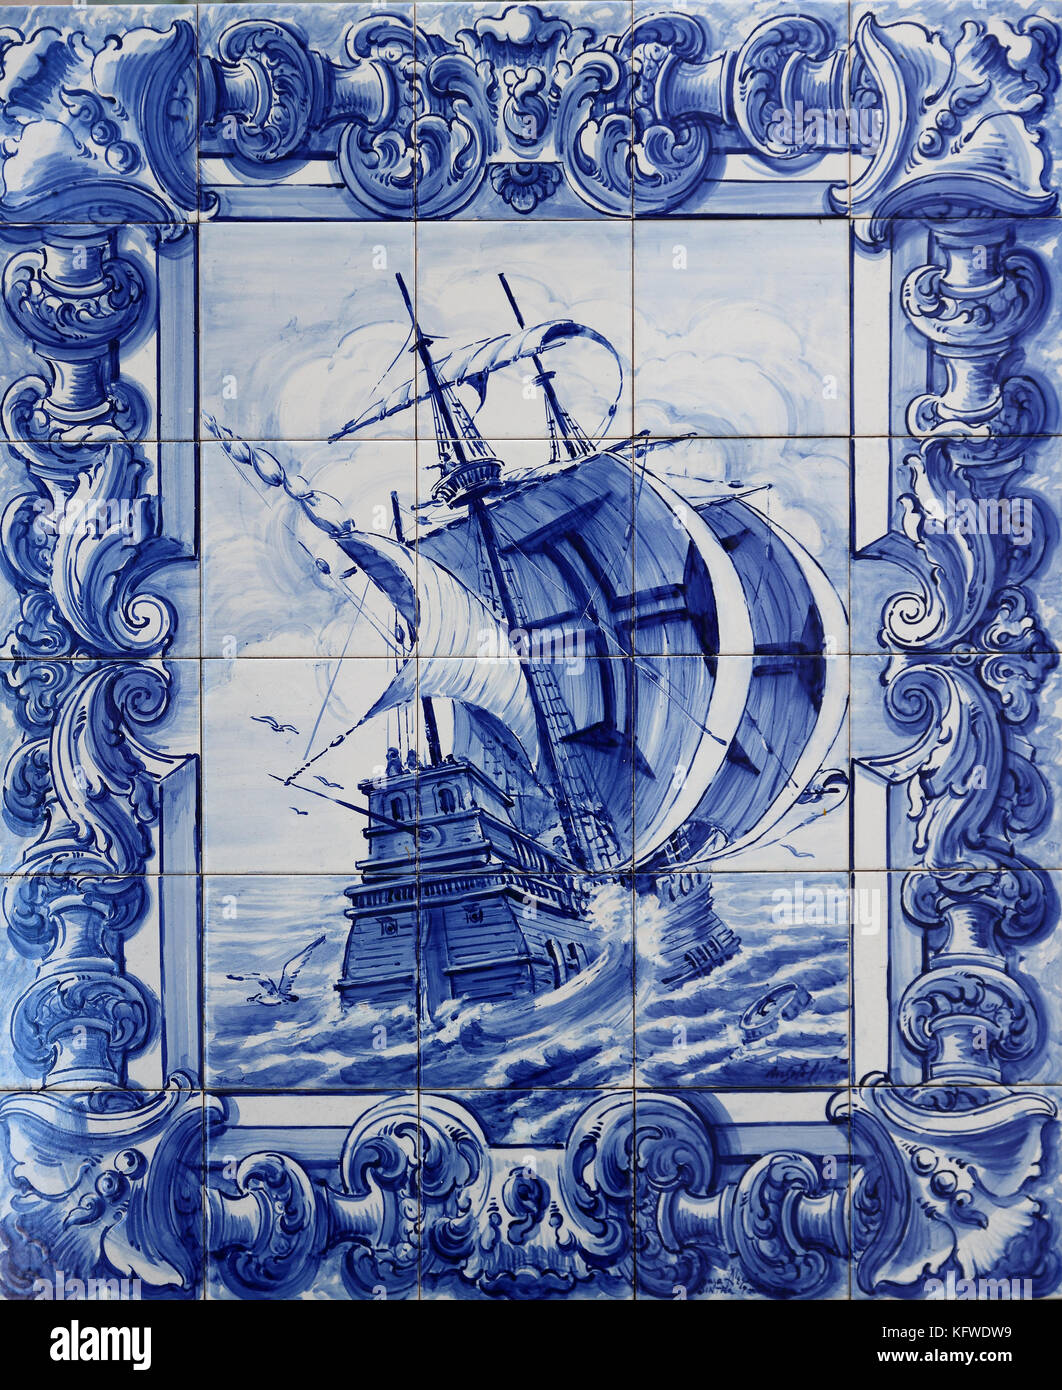 https www alamy com stock image typical tile artwork in sintra portugal depicting a portuguese galleon 164672853 html